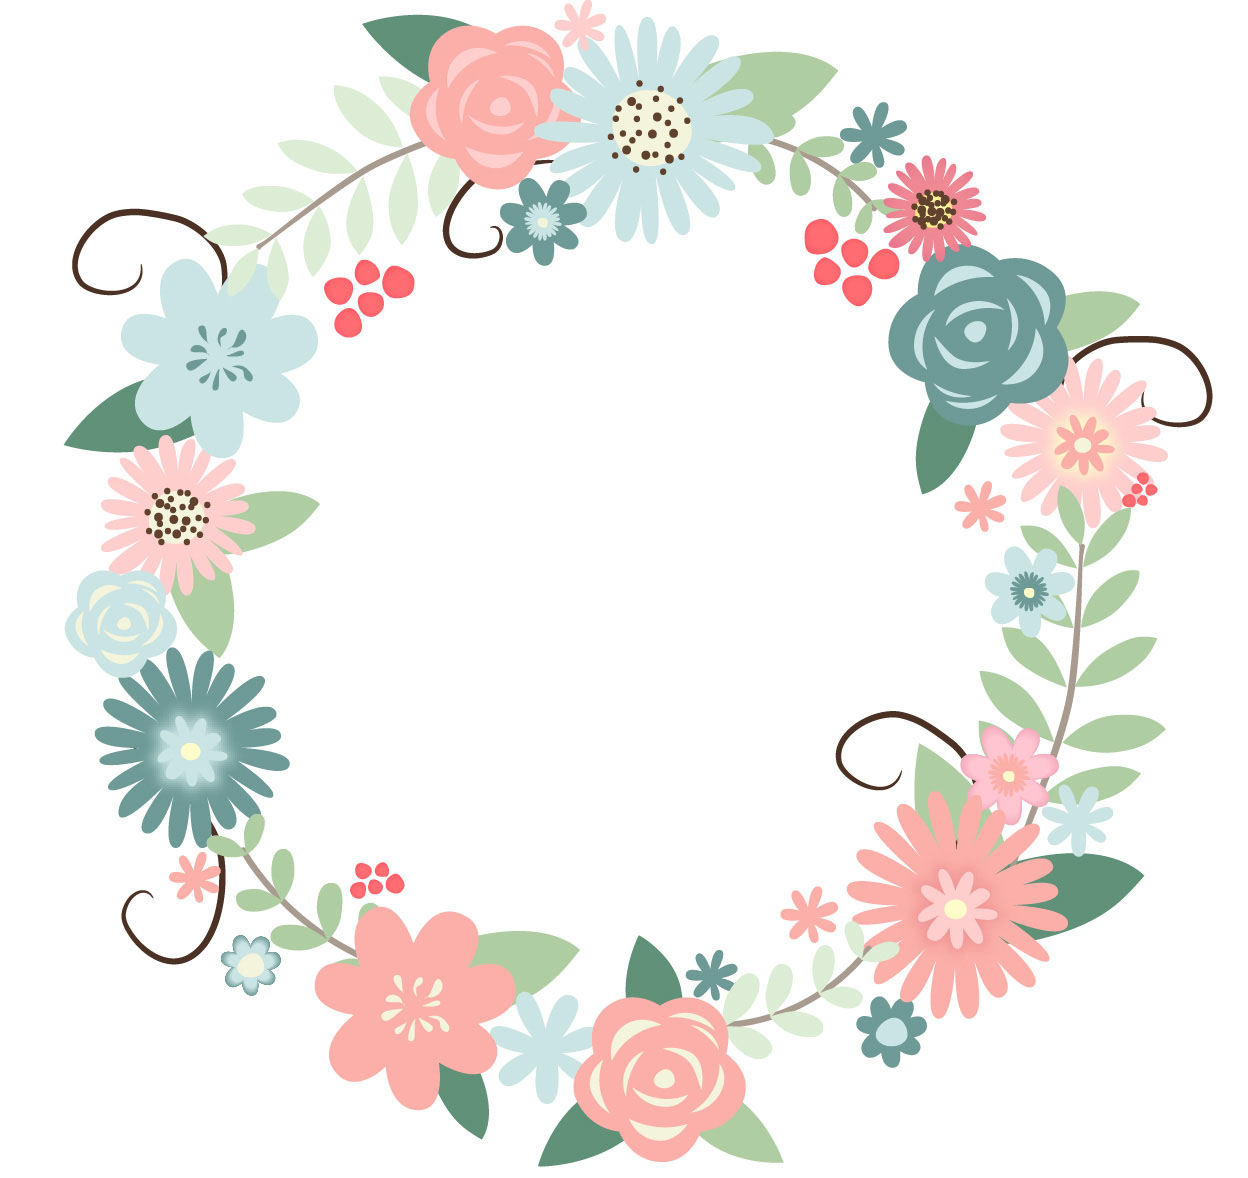 Floral Wreath Png 2237 on Wedding Ring Clip Art Transparent